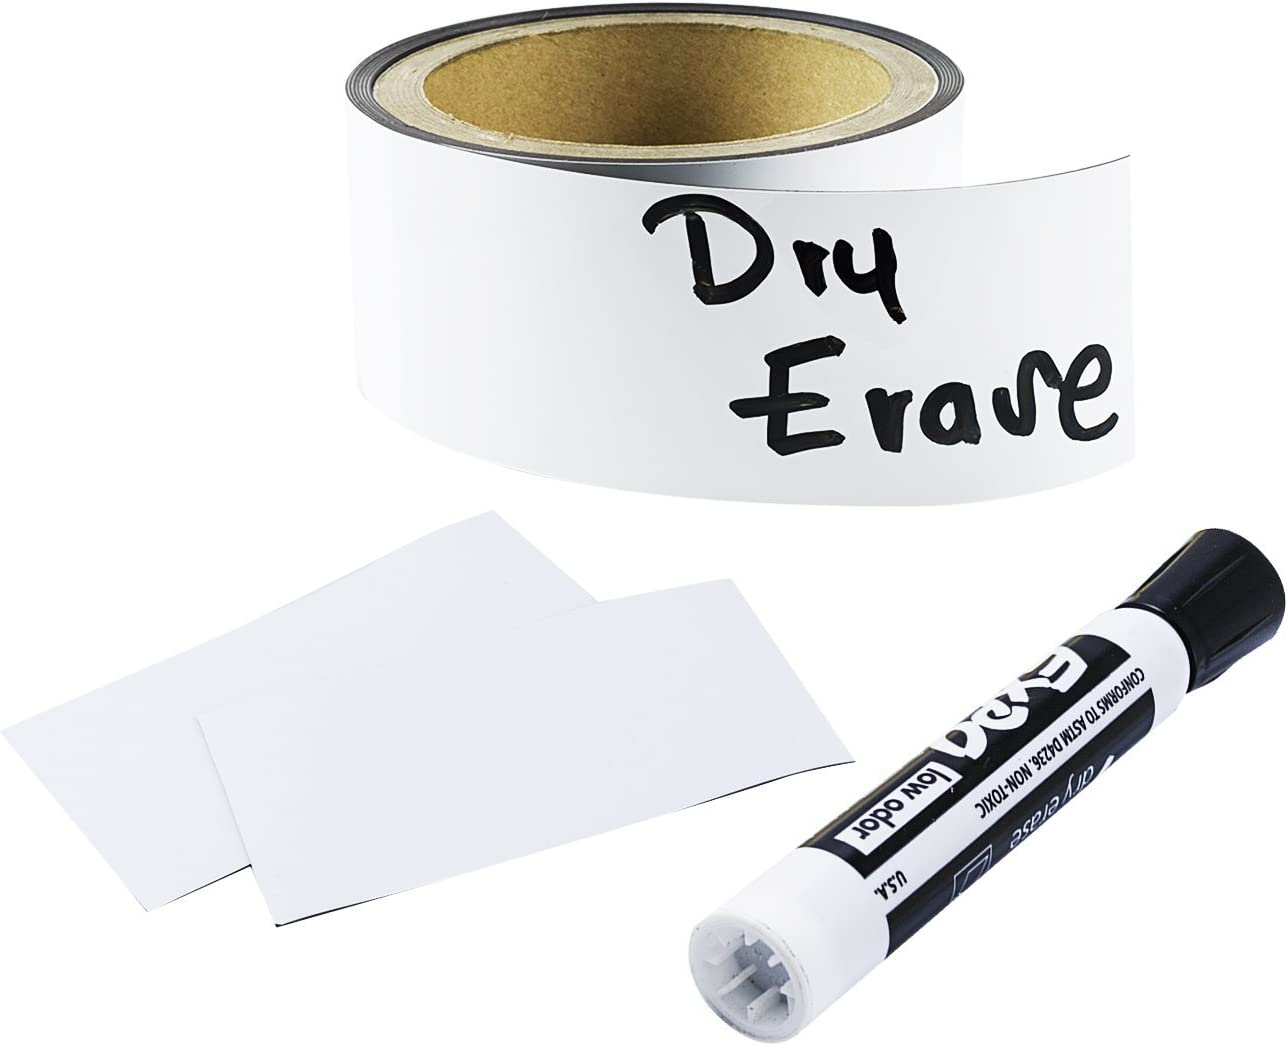 """Houseables Magnetic Strip Rolls, Dry Erase Labels, 2"""" x 10', Magnet, Glossy White, Write On, Wipe Off, Magnetically Receptive Whiteboard Sheet, Business Filing Cabinet Magnets"""